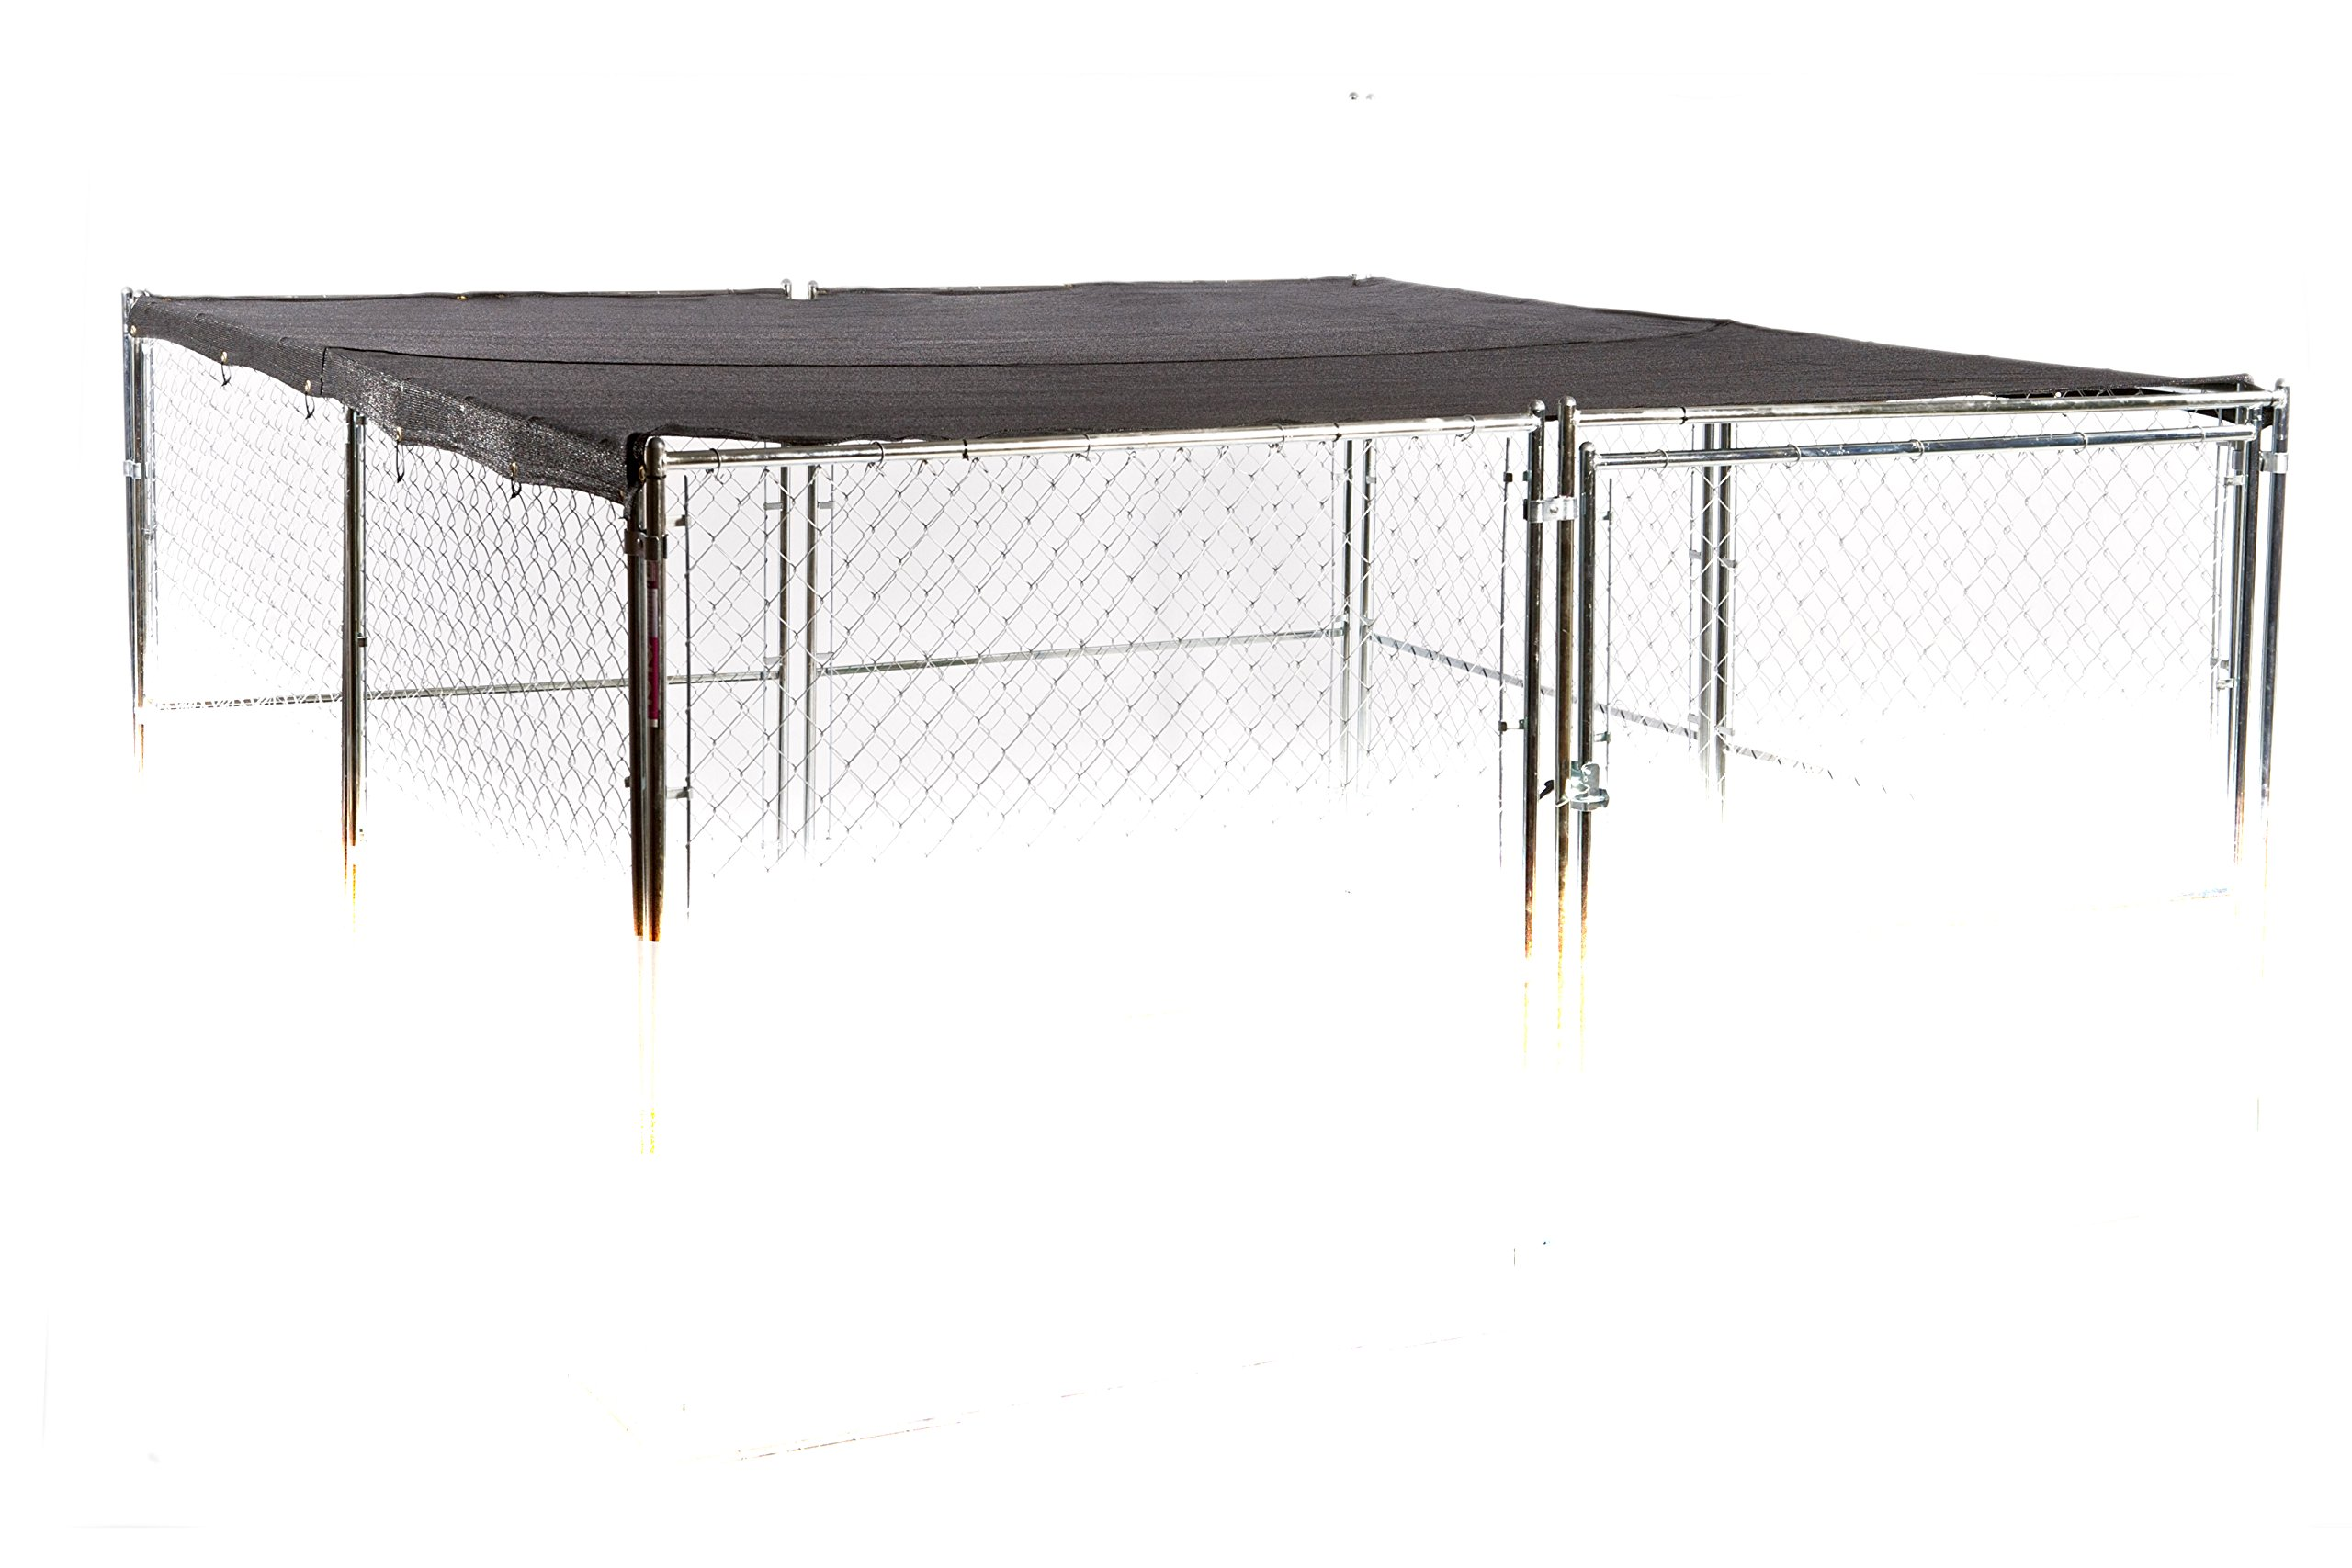 Weatherguard Universal Extra Large Shade Cover and Windscreen for Outdoor Cages and Pens - 10ft. X 10ft.